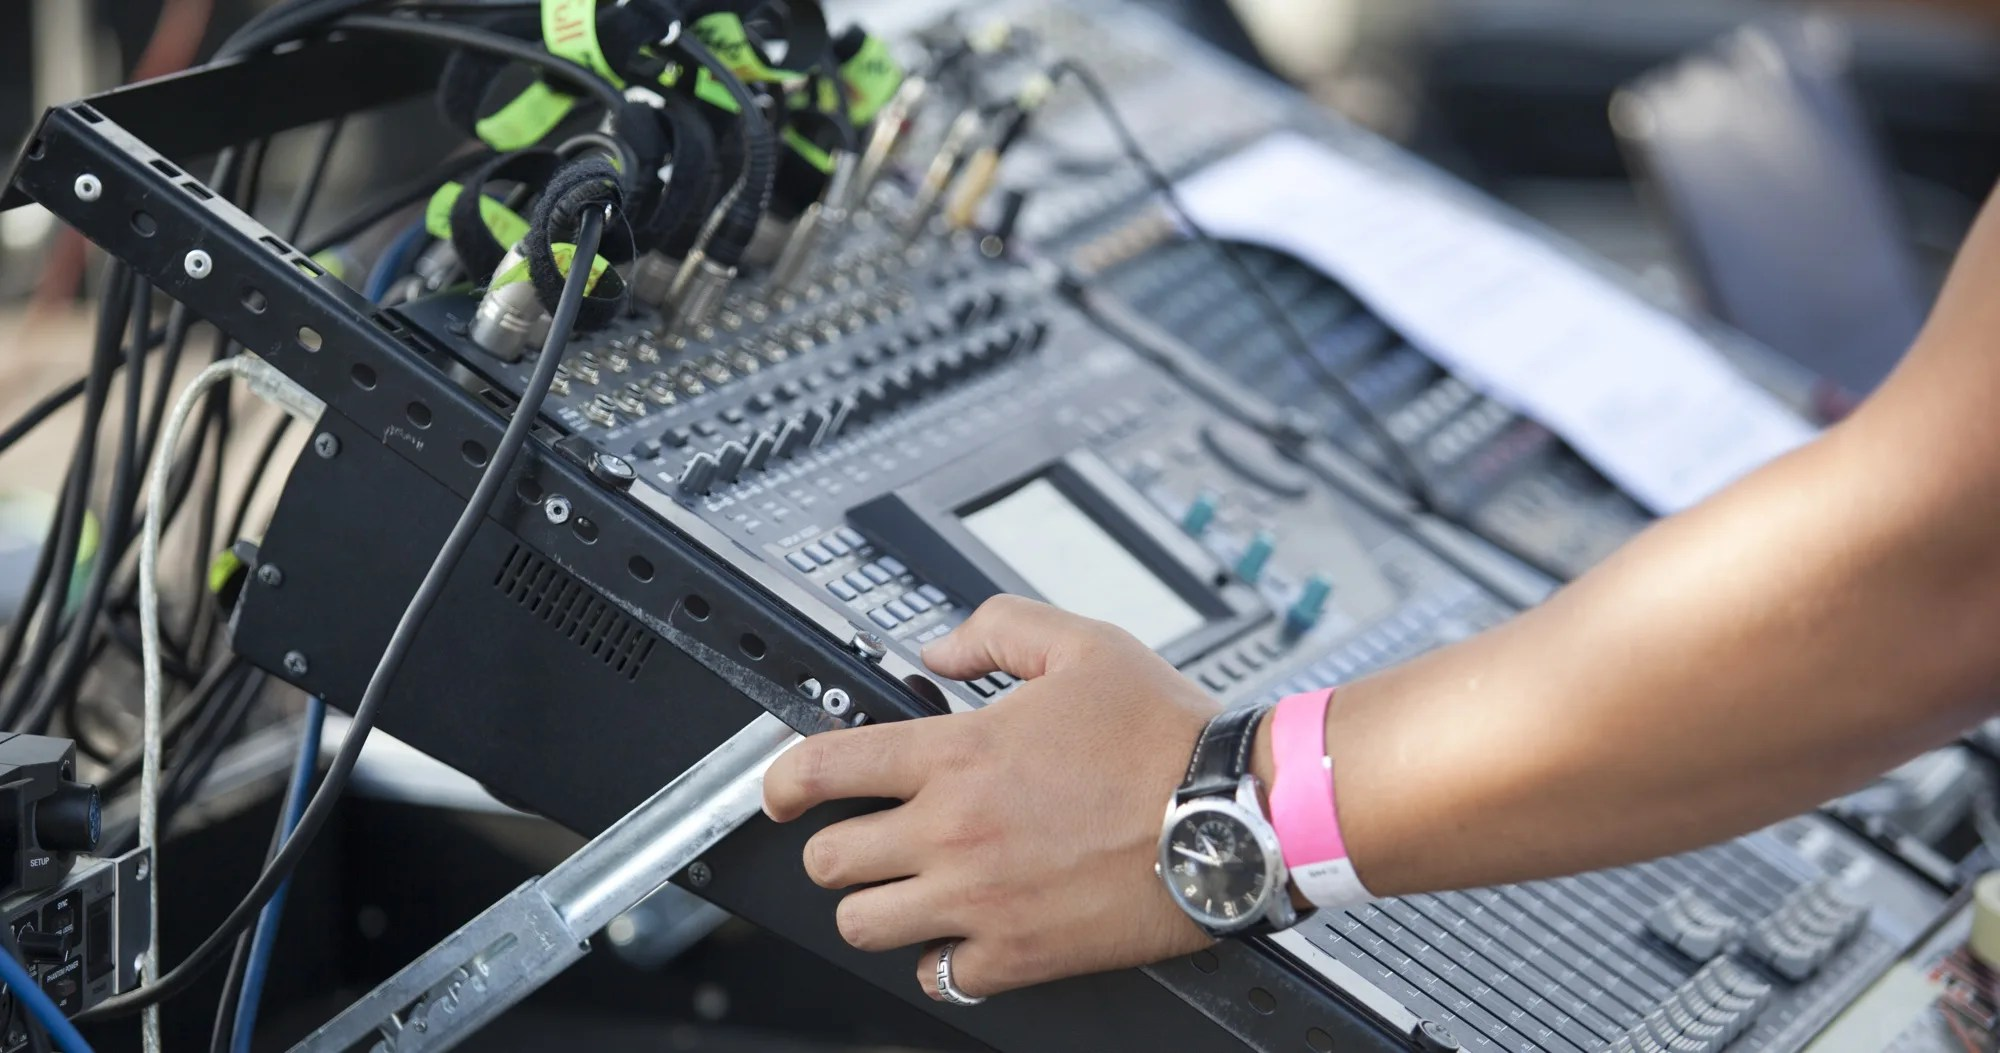 Fixing Feedback and Stage Sound with Audio Engineer Andy